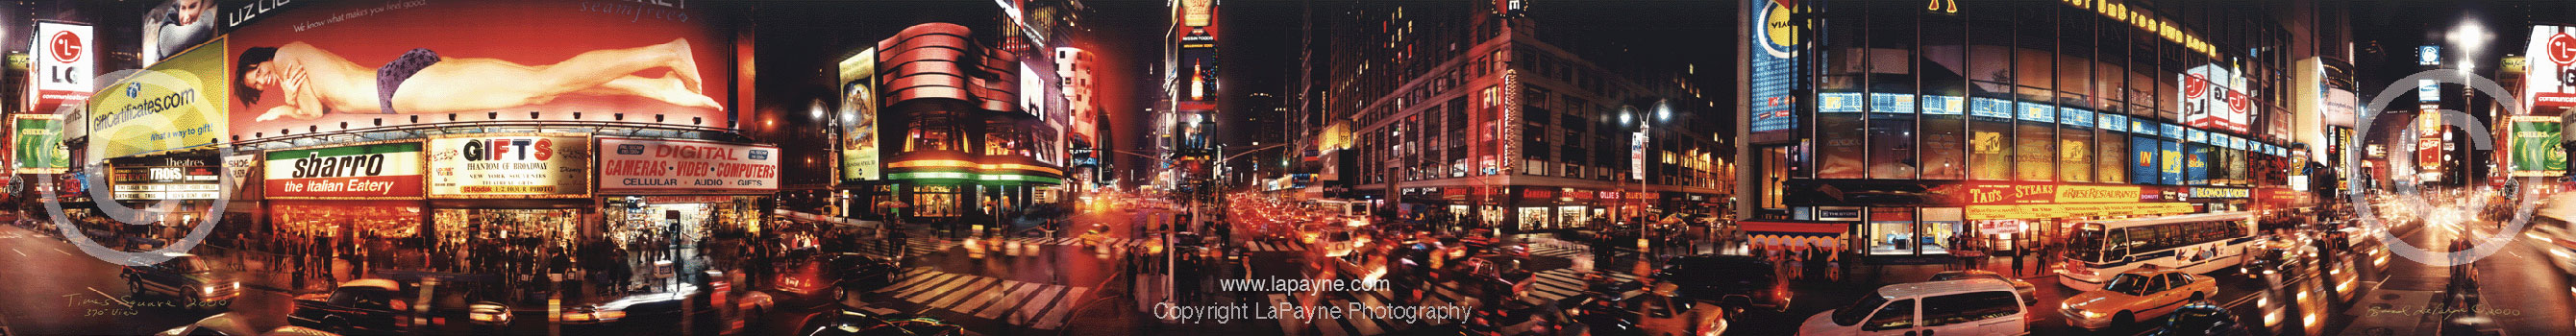 Times Square Panoramic Image2000